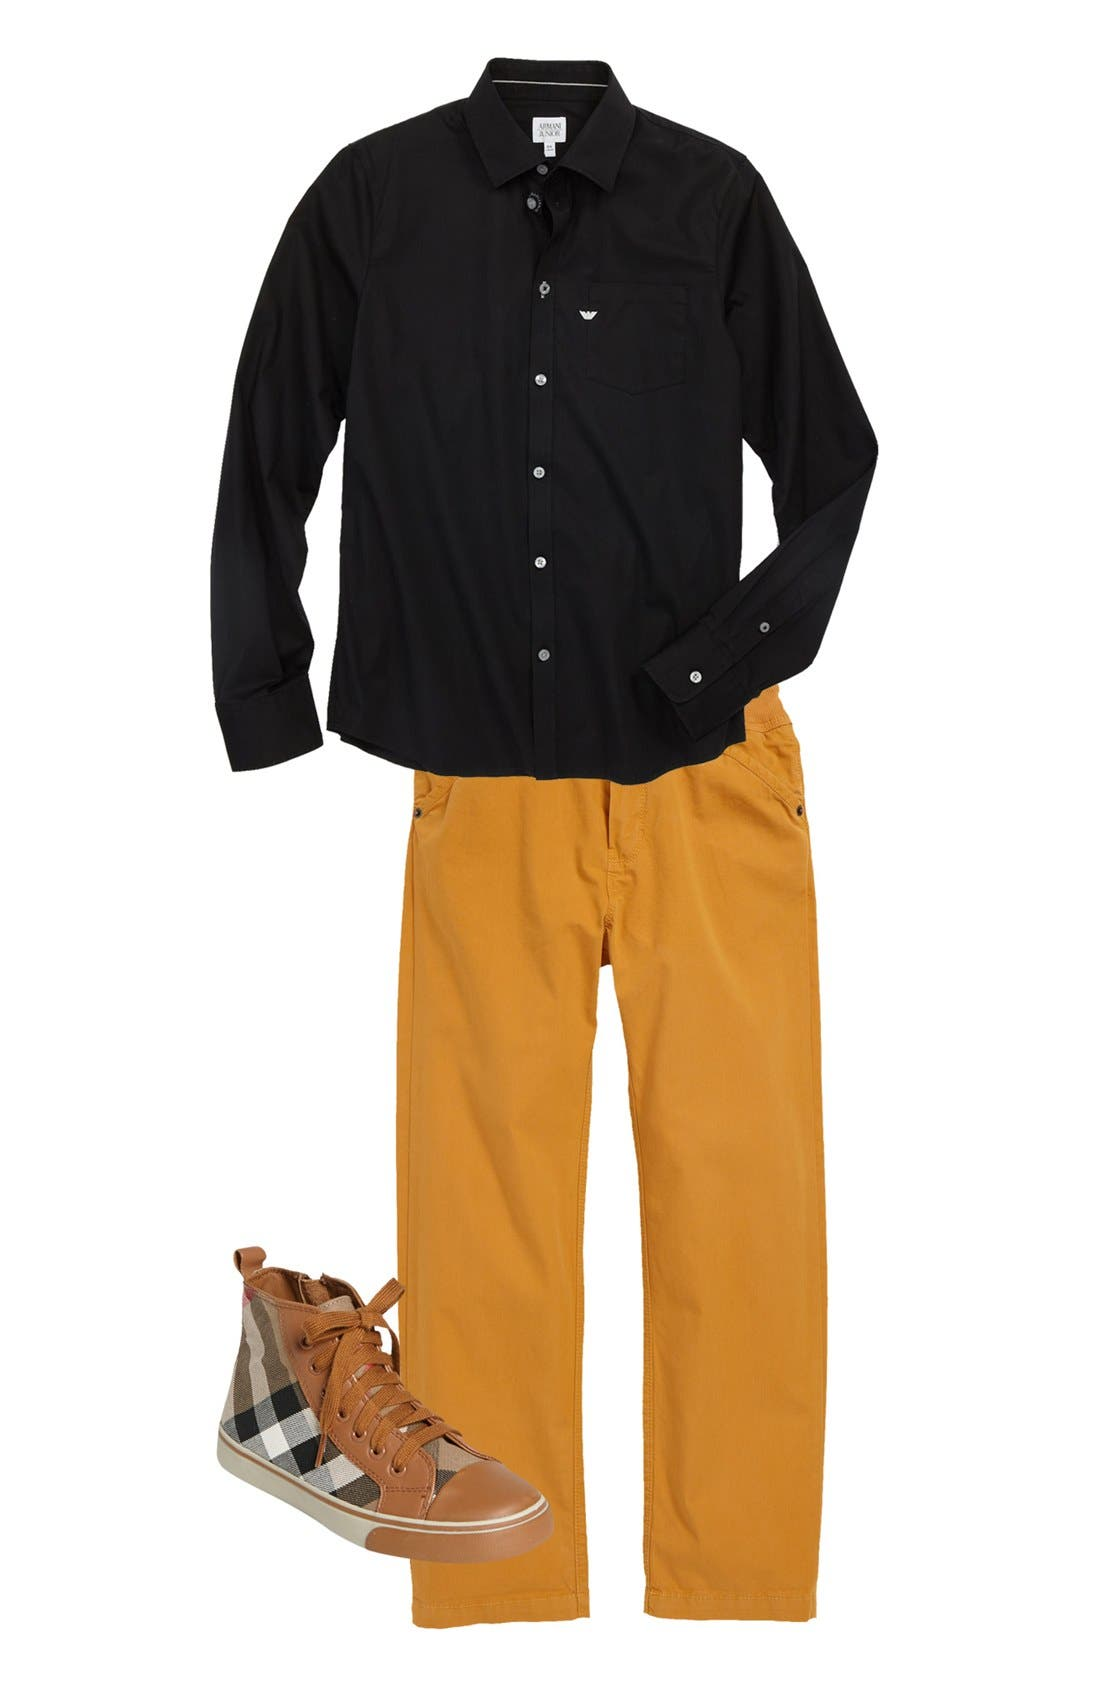 Main Image - Armani Junior Shirt, LITTLE MARC JACOBS Pants & Burberry Sneaker (Big Boys)